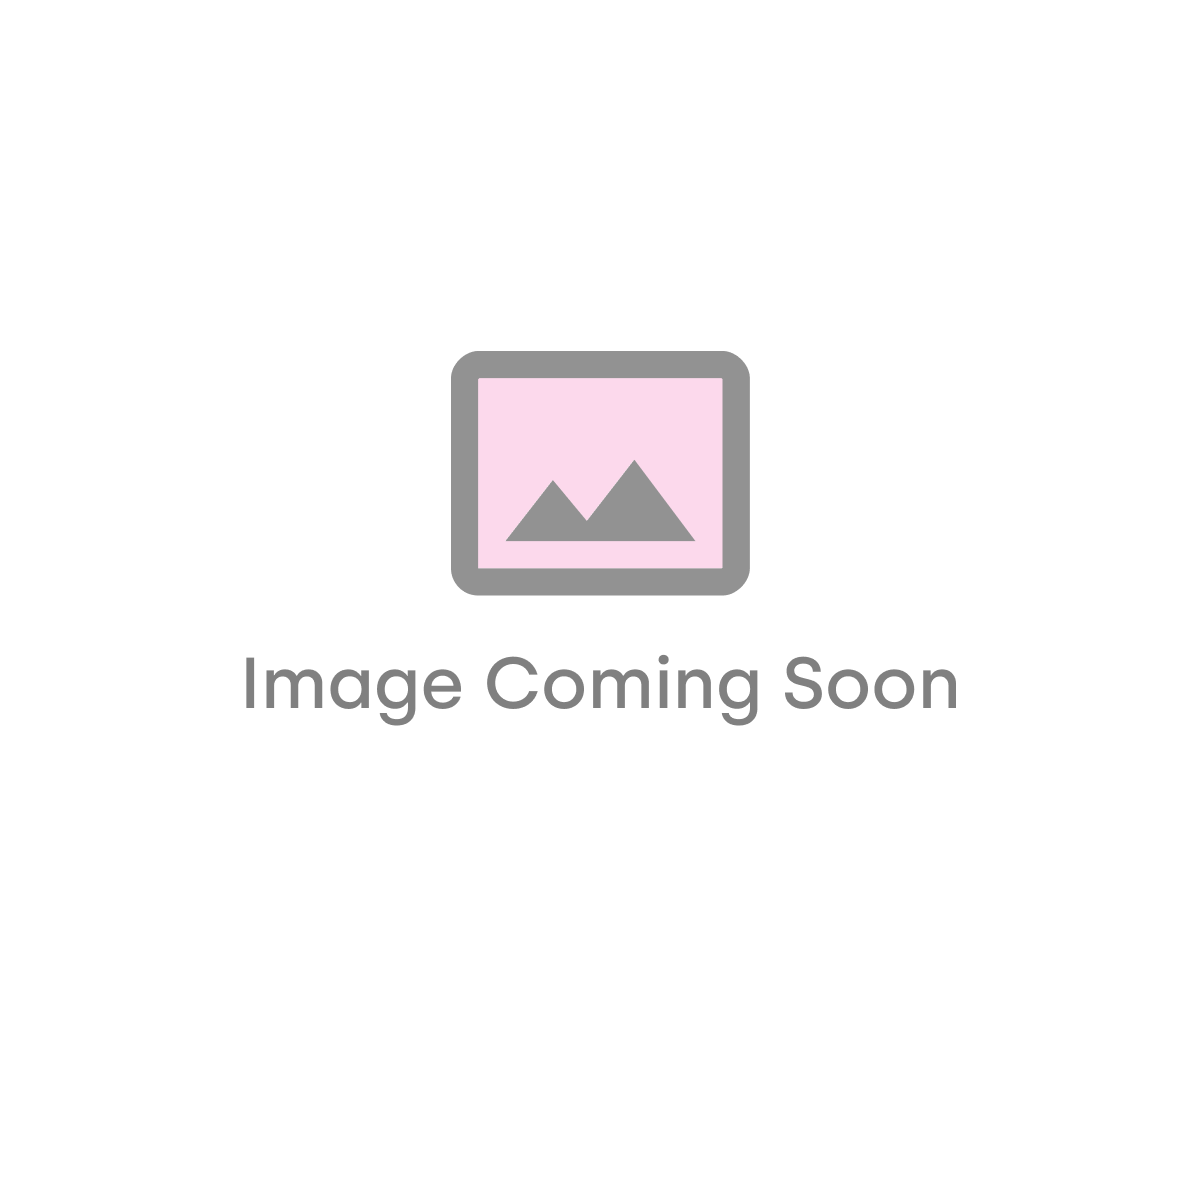 Aida Close to Wall C/C Pan with Soft Close Seat including Cistern - 8833